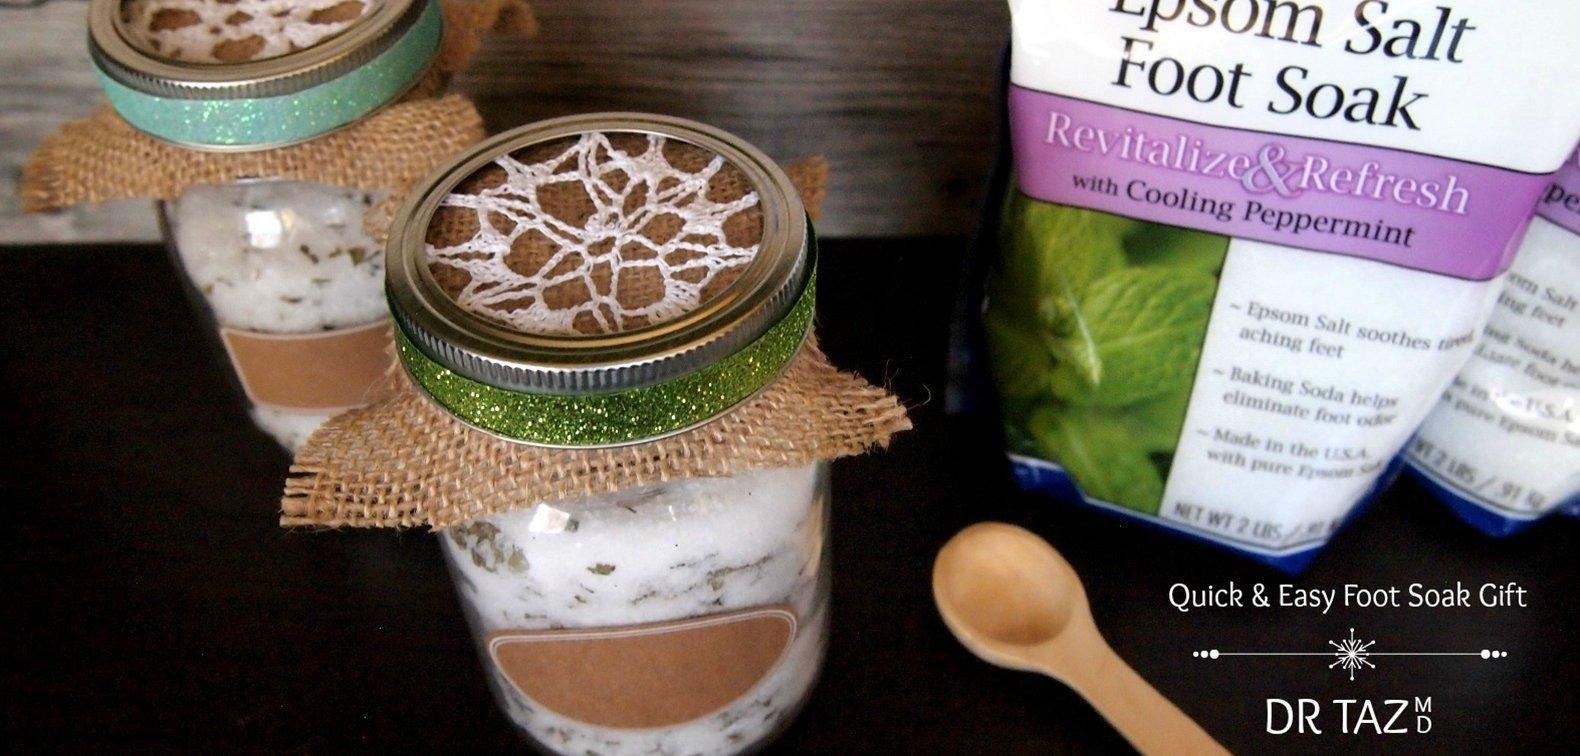 A Simple Gift: Peppermint Epsom Salt Foot Soak